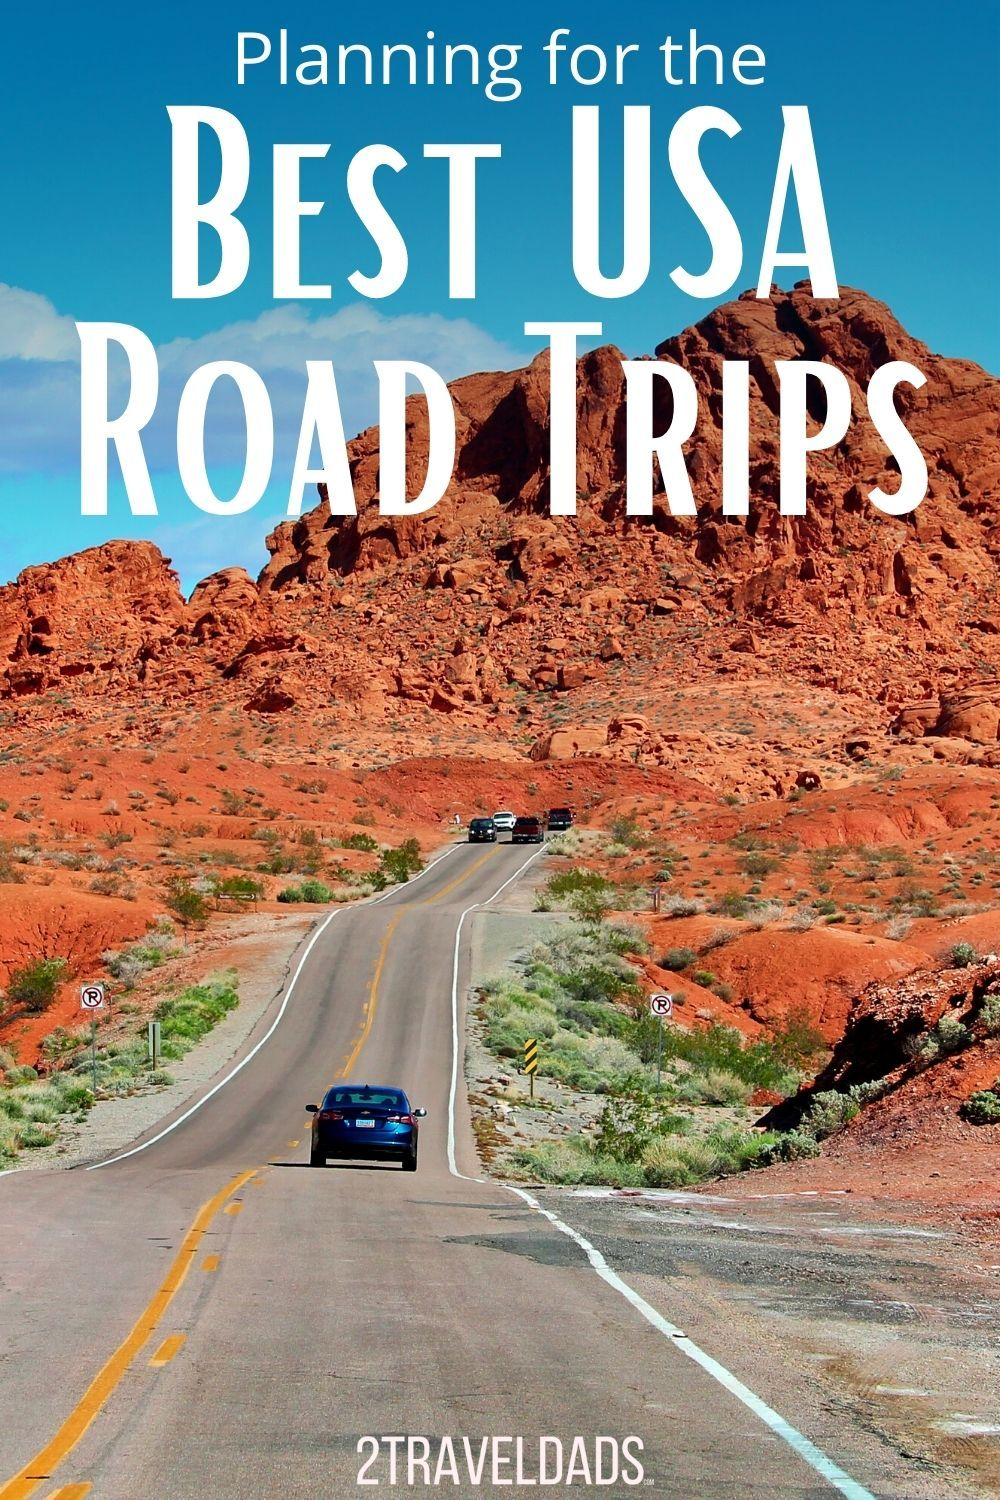 Planning The Best Usa Road Trips Tips And Tools To Plan Awesome Escapes Road Trip Usa California Travel Road Trips Road Trip Fun